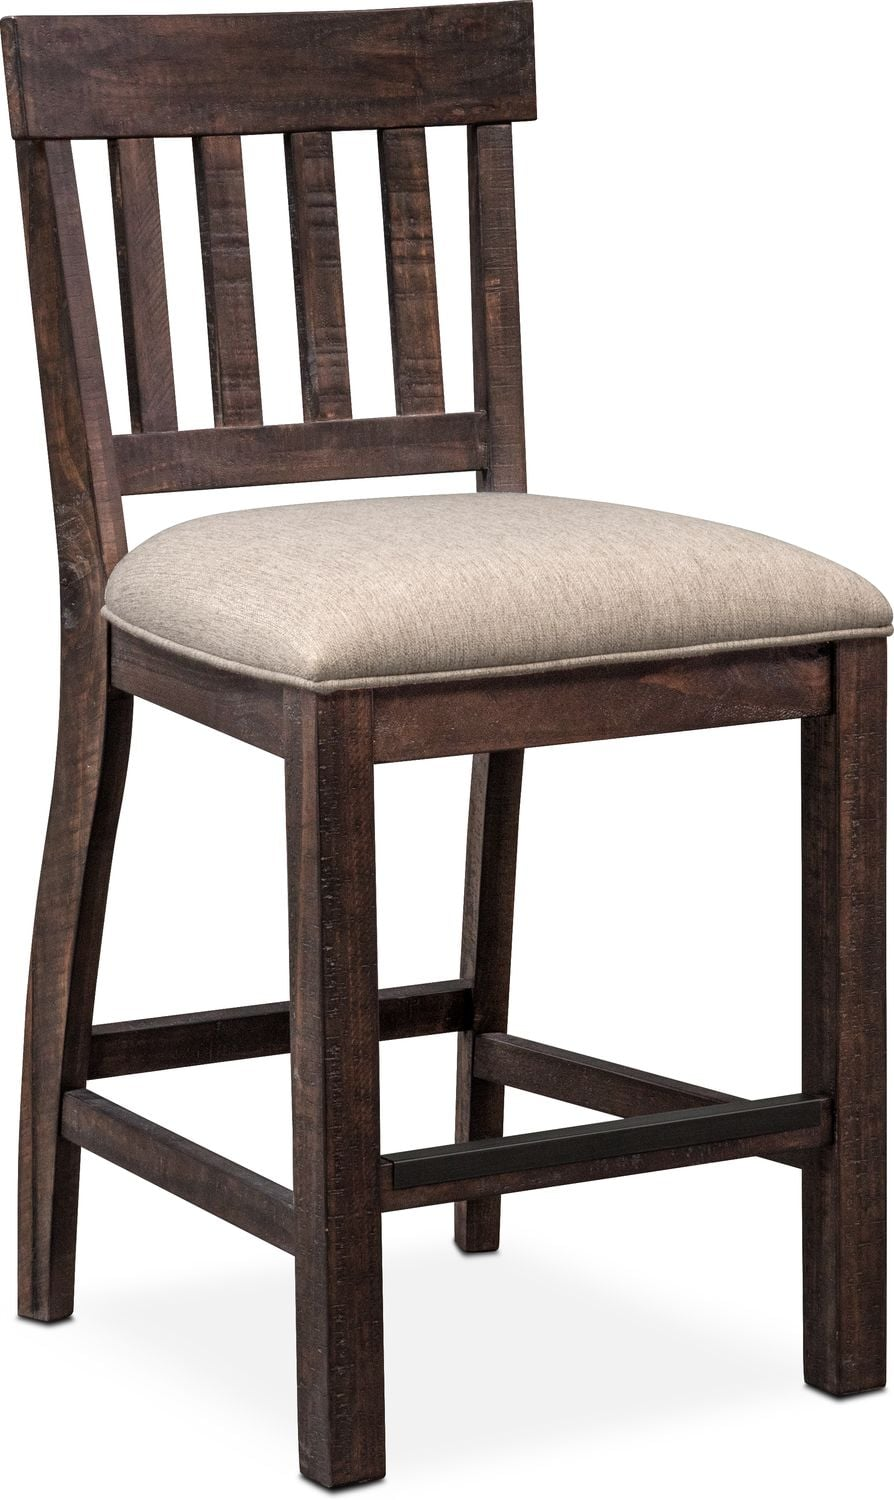 Counter Height Chairs With Arms Charthouse Counter Height Stool